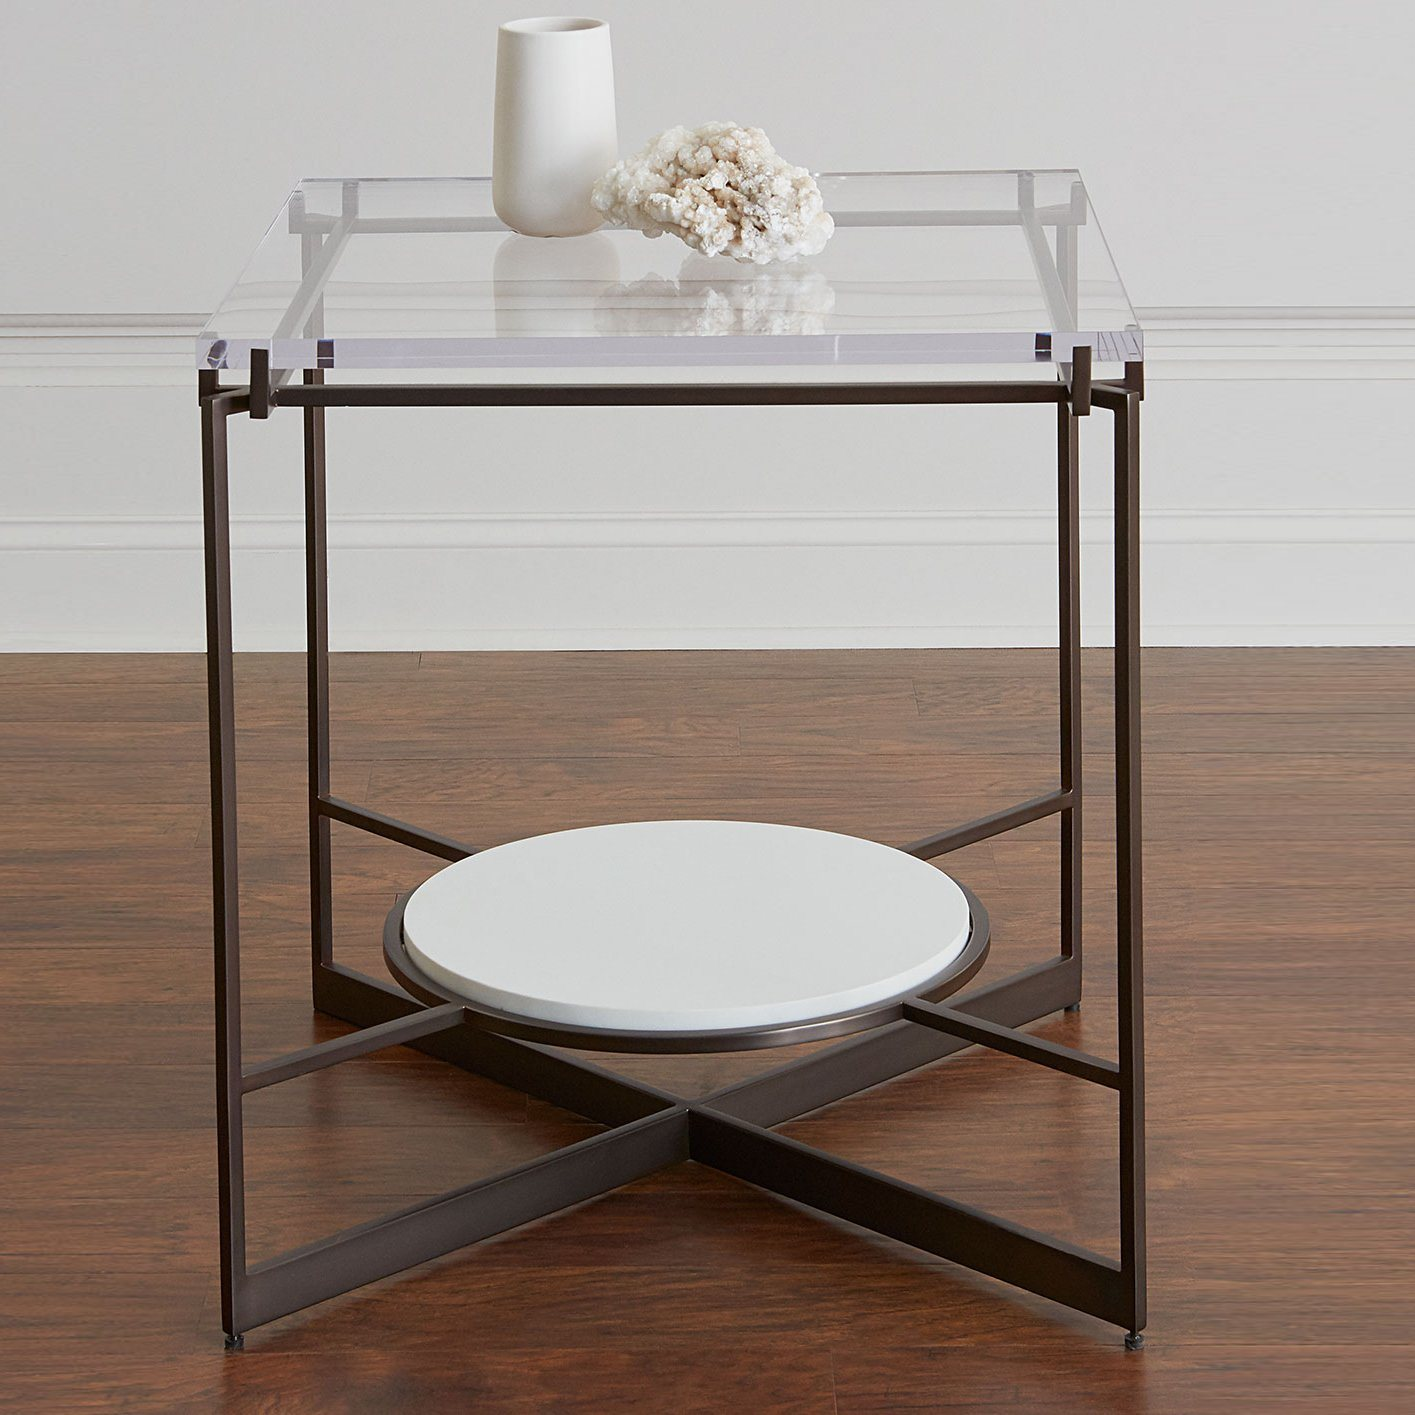 Wholesale modern look acrylic table acrylic coffee table acrylic end table